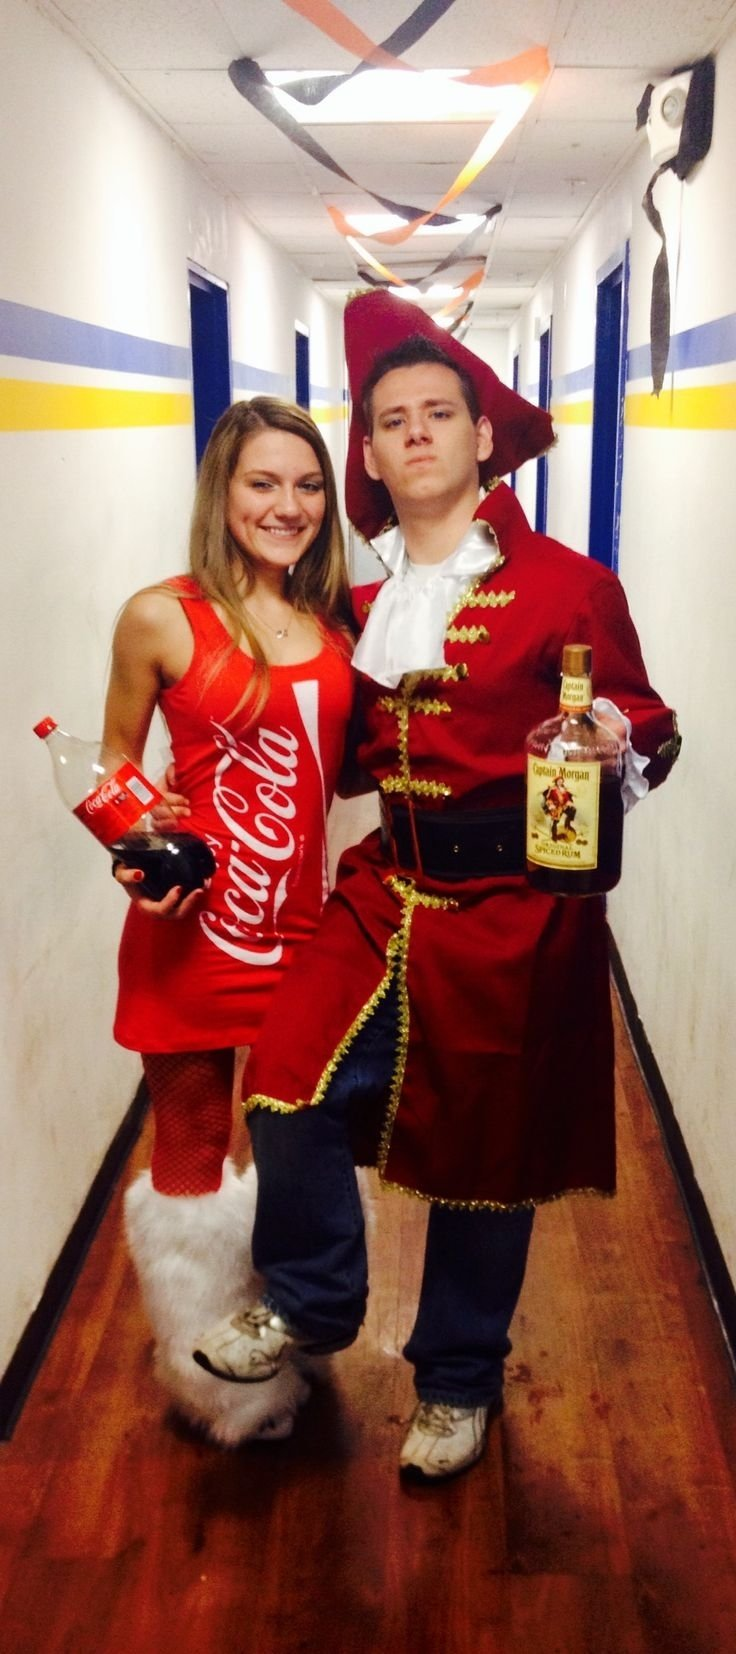 10 Attractive Clever Halloween Costume Ideas Couples 24 best halloween costumes images on pinterest costume ideas 1